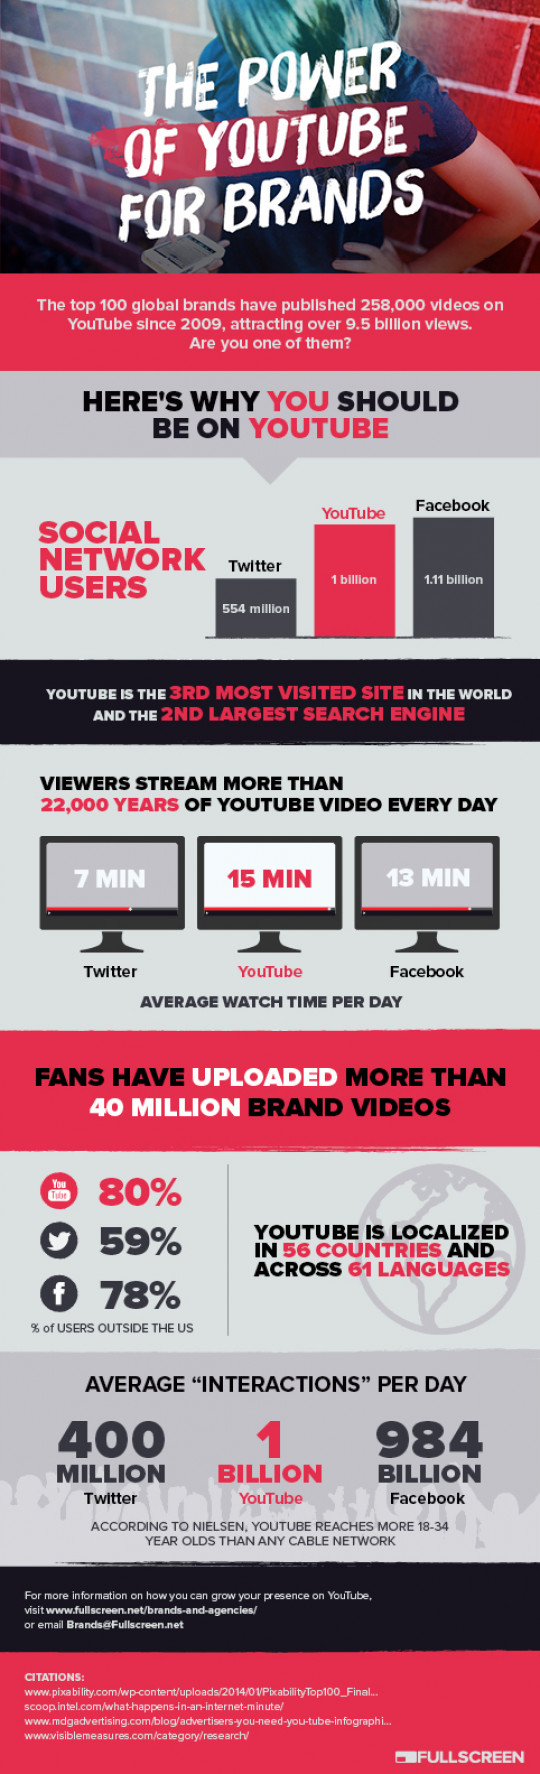 The Power of YouTube for Brands